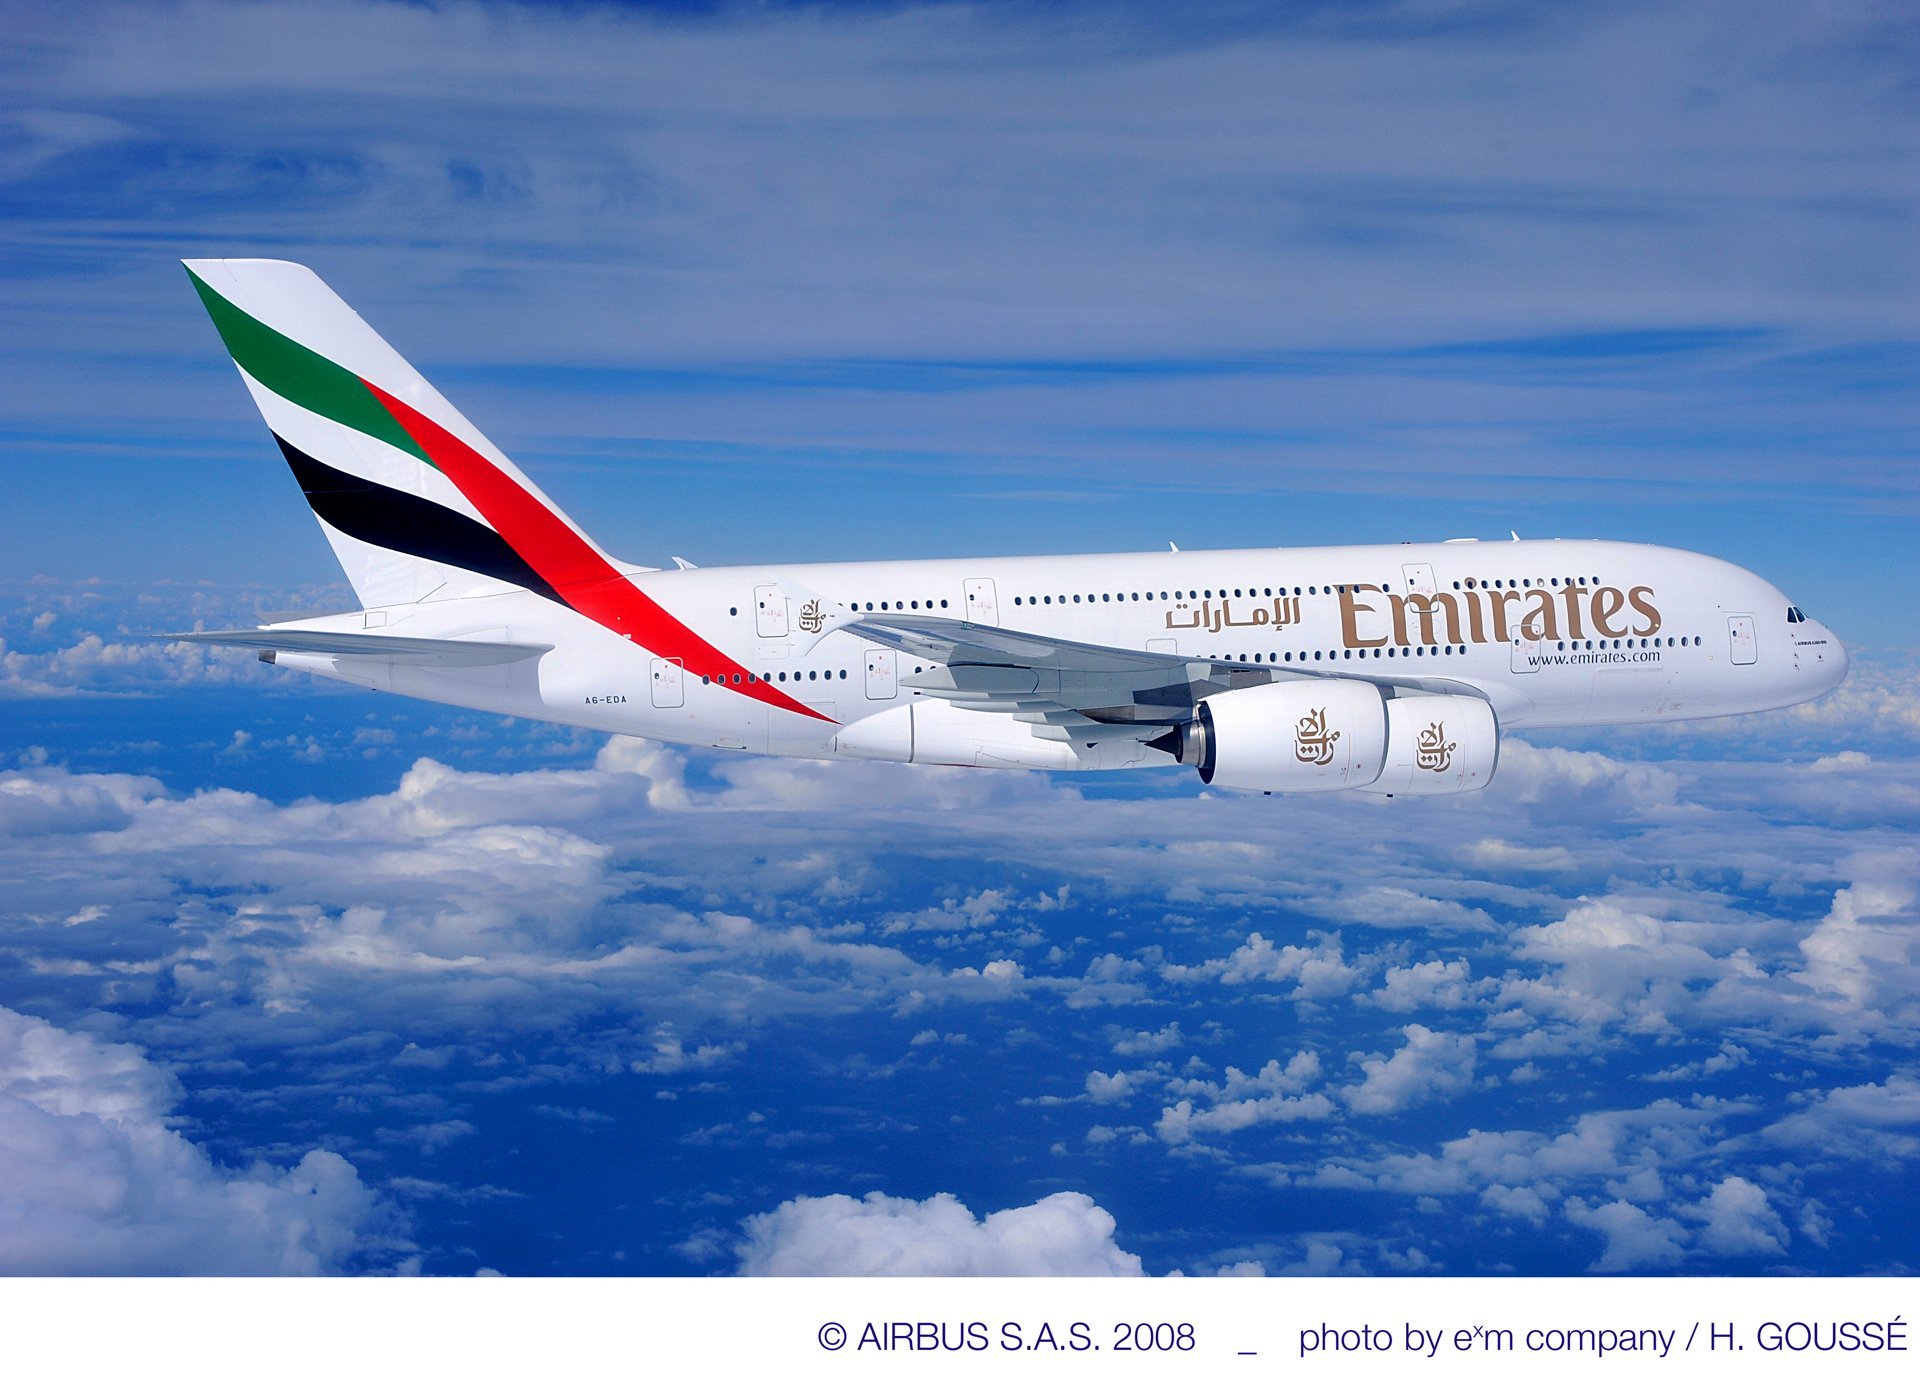 Dubai-based Emirates airline has placed an additional order for 50 A380 aircraft, confirming the continued strong demand for very large aircraft in the Middle East that are needed to meet the region's higher than average traffic growth.